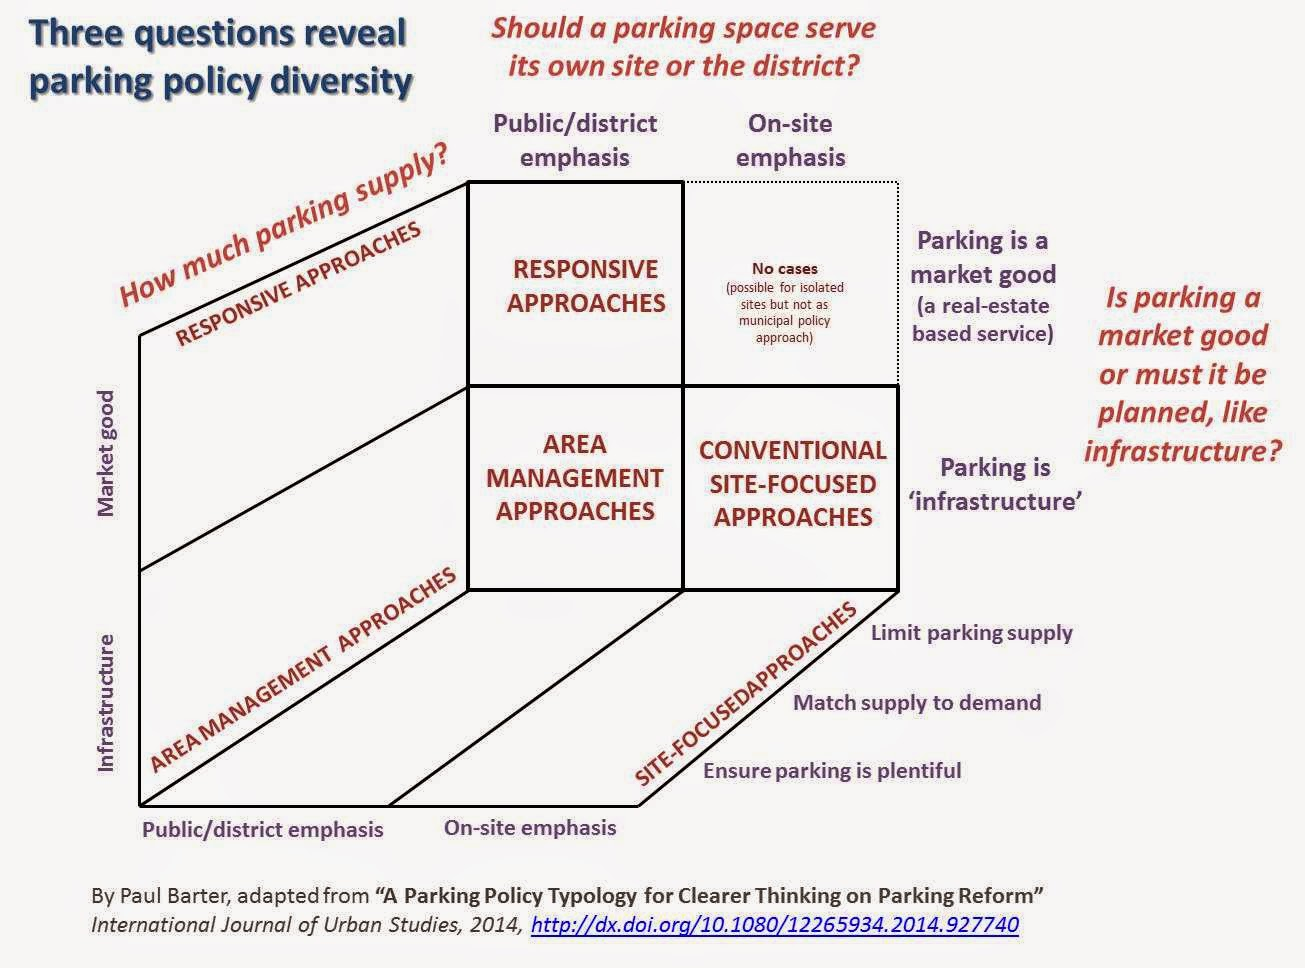 We need clearer thinking on key parking policy alternatives. Here is help.